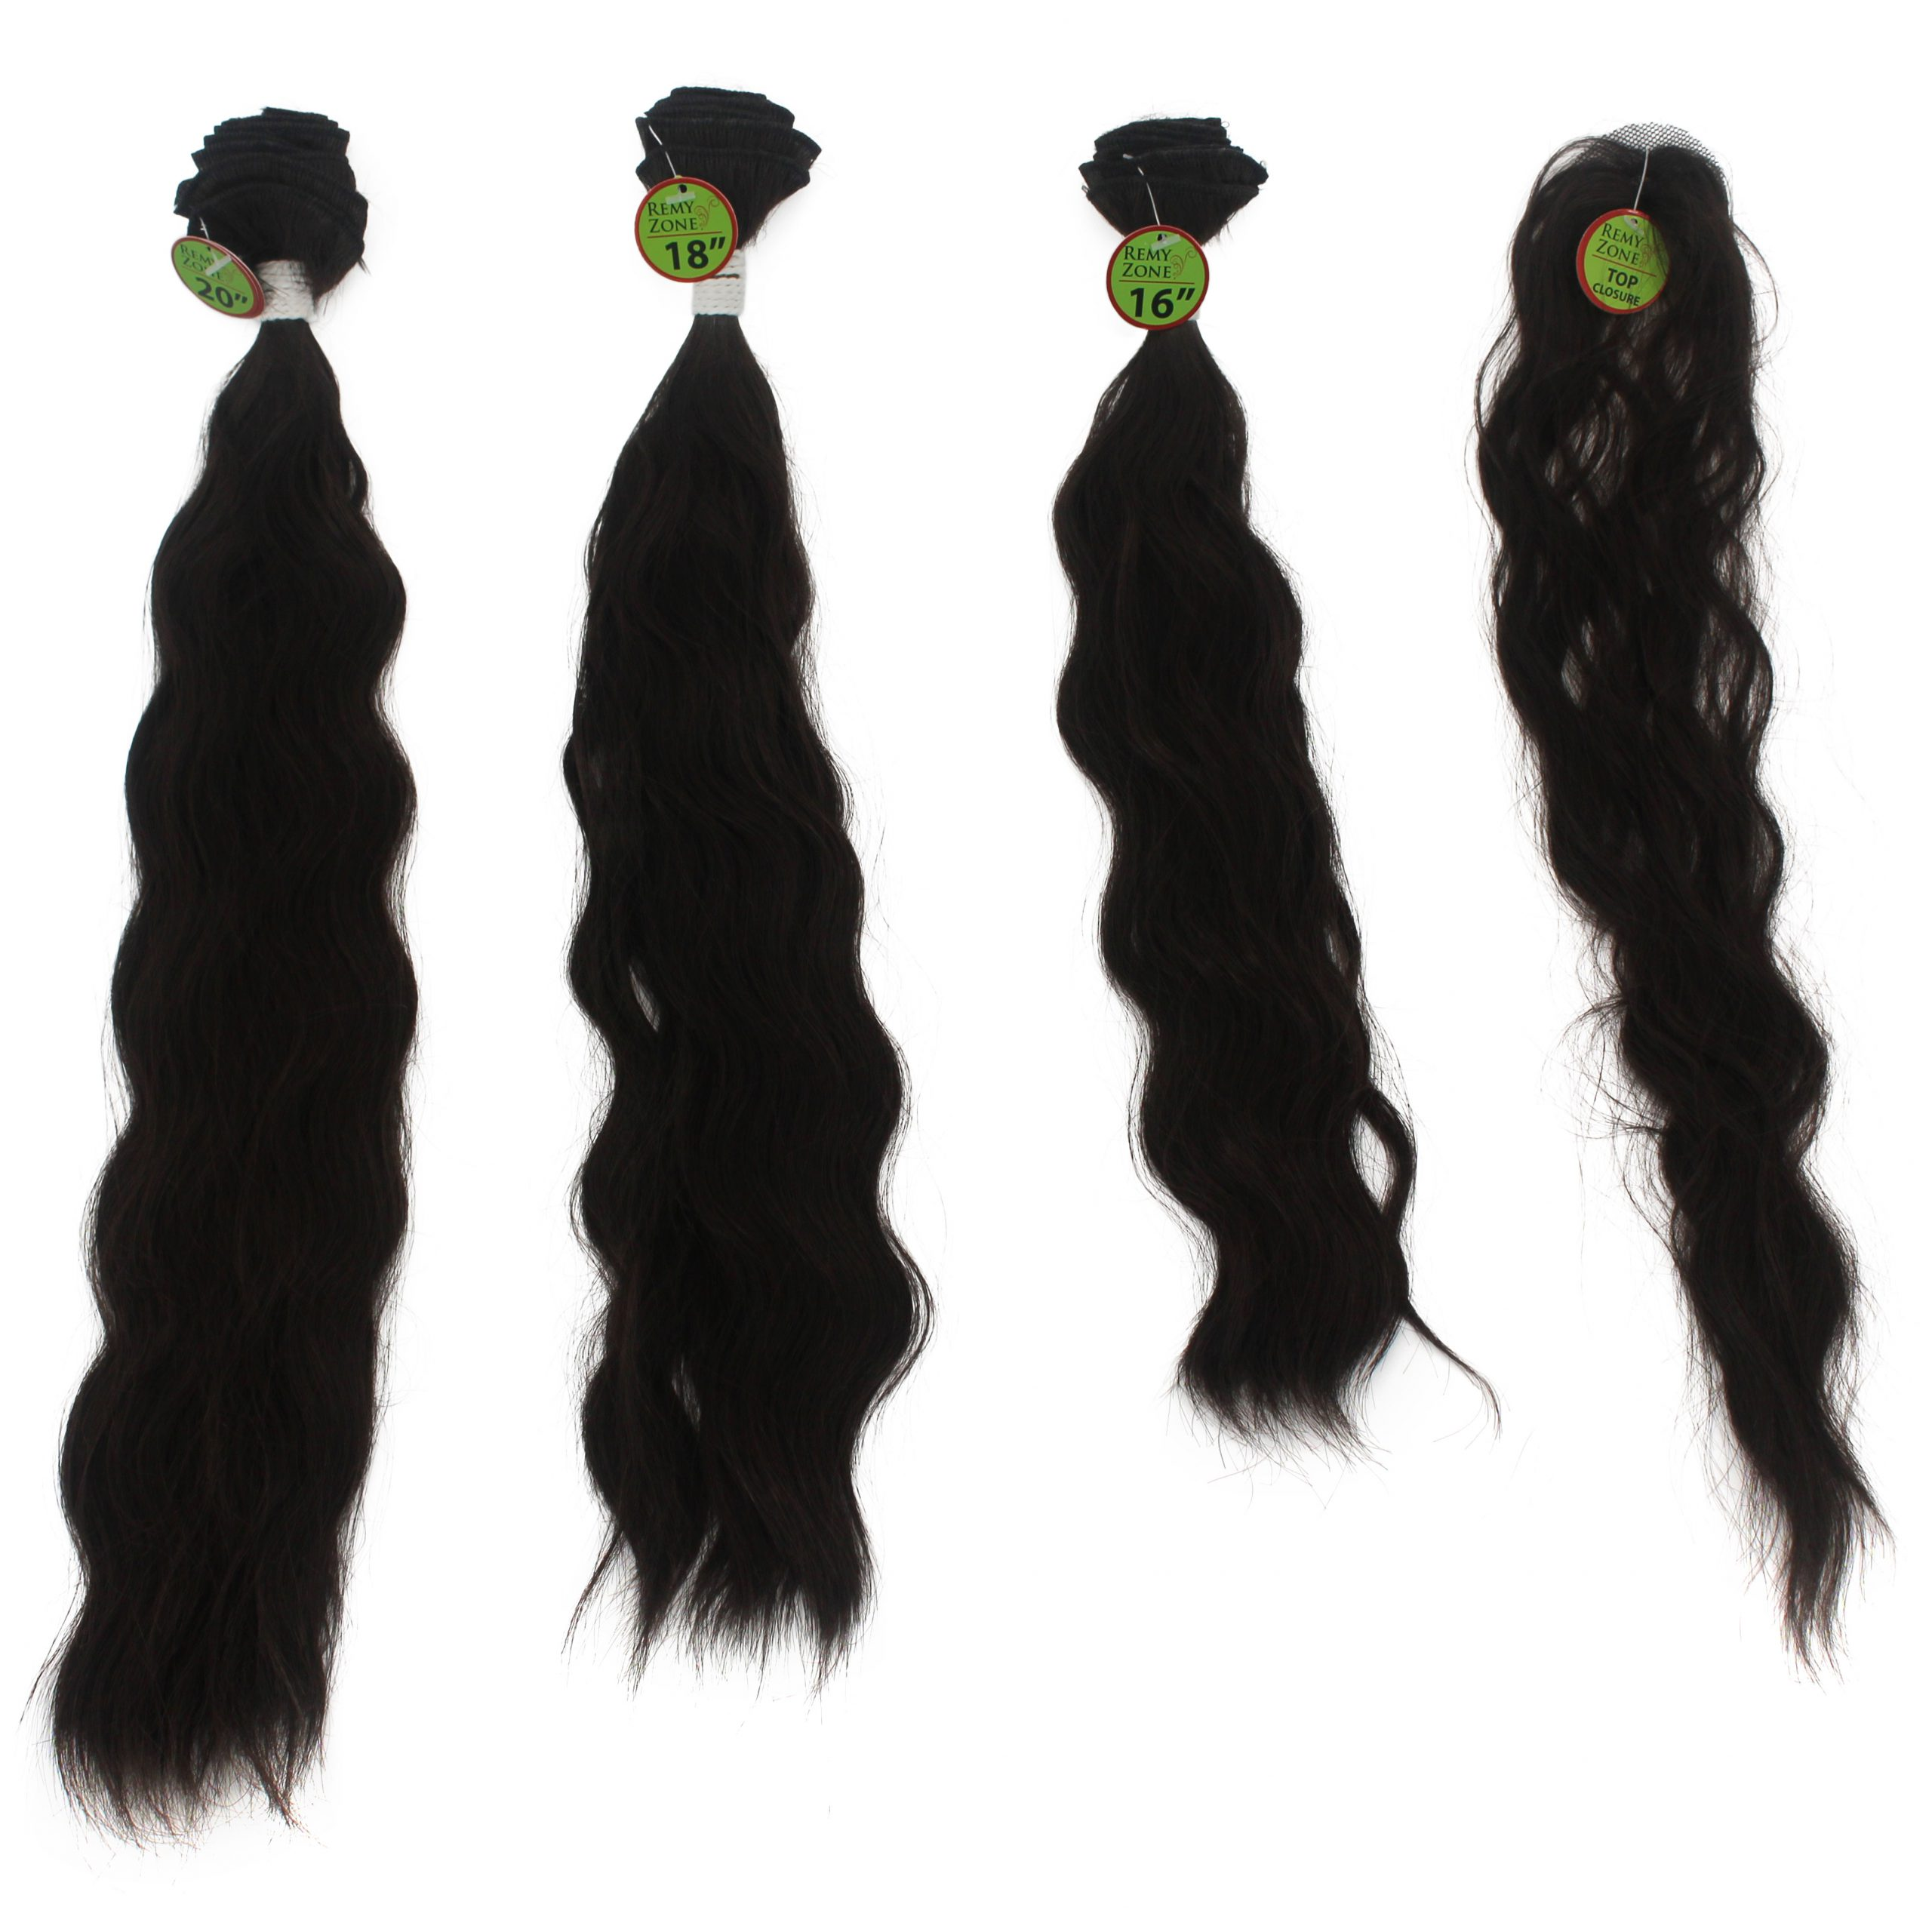 NATURAL WAVE 3PCS 16inch+18inch+20inch - 4